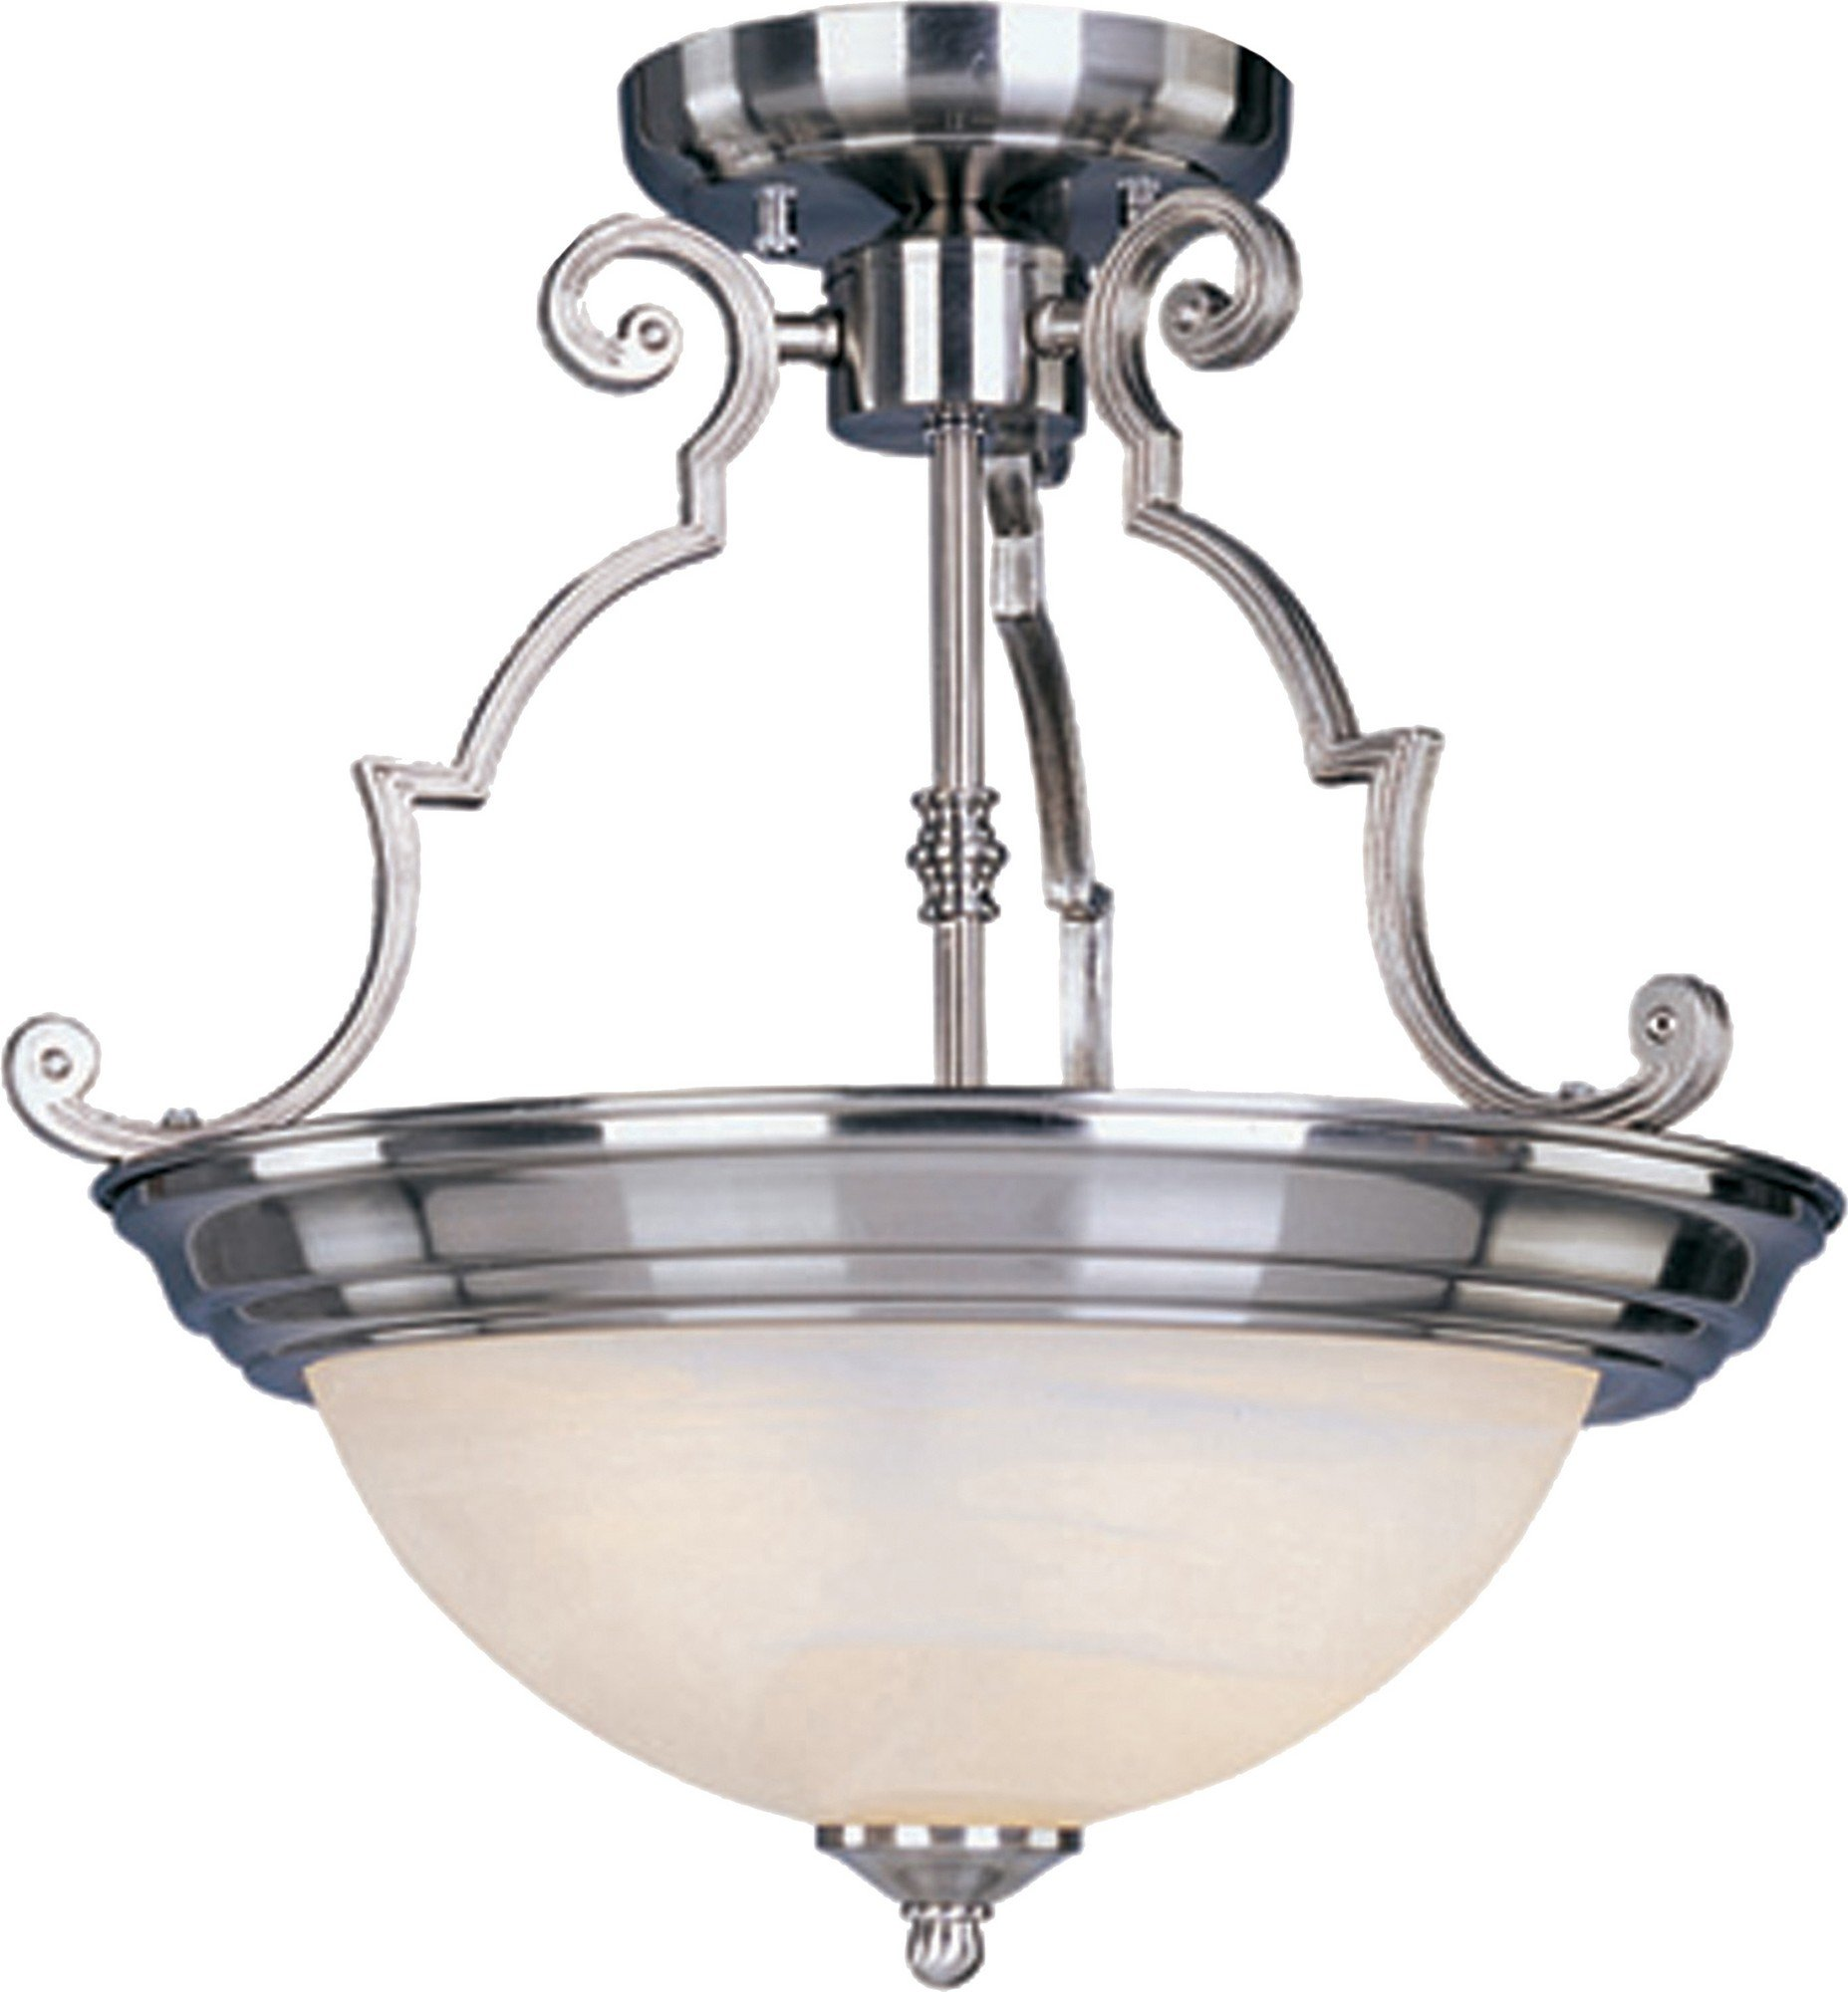 Maxim 5843MRSN Essentials 2-Light Semi-Flush Mount, Satin Nickel Finish, Marble Glass, MB Incandescent Incandescent Bulb , 50W Max., Dry Safety Rating, Standard Dimmable, Metal Shade Material, 550 Rated Lumens